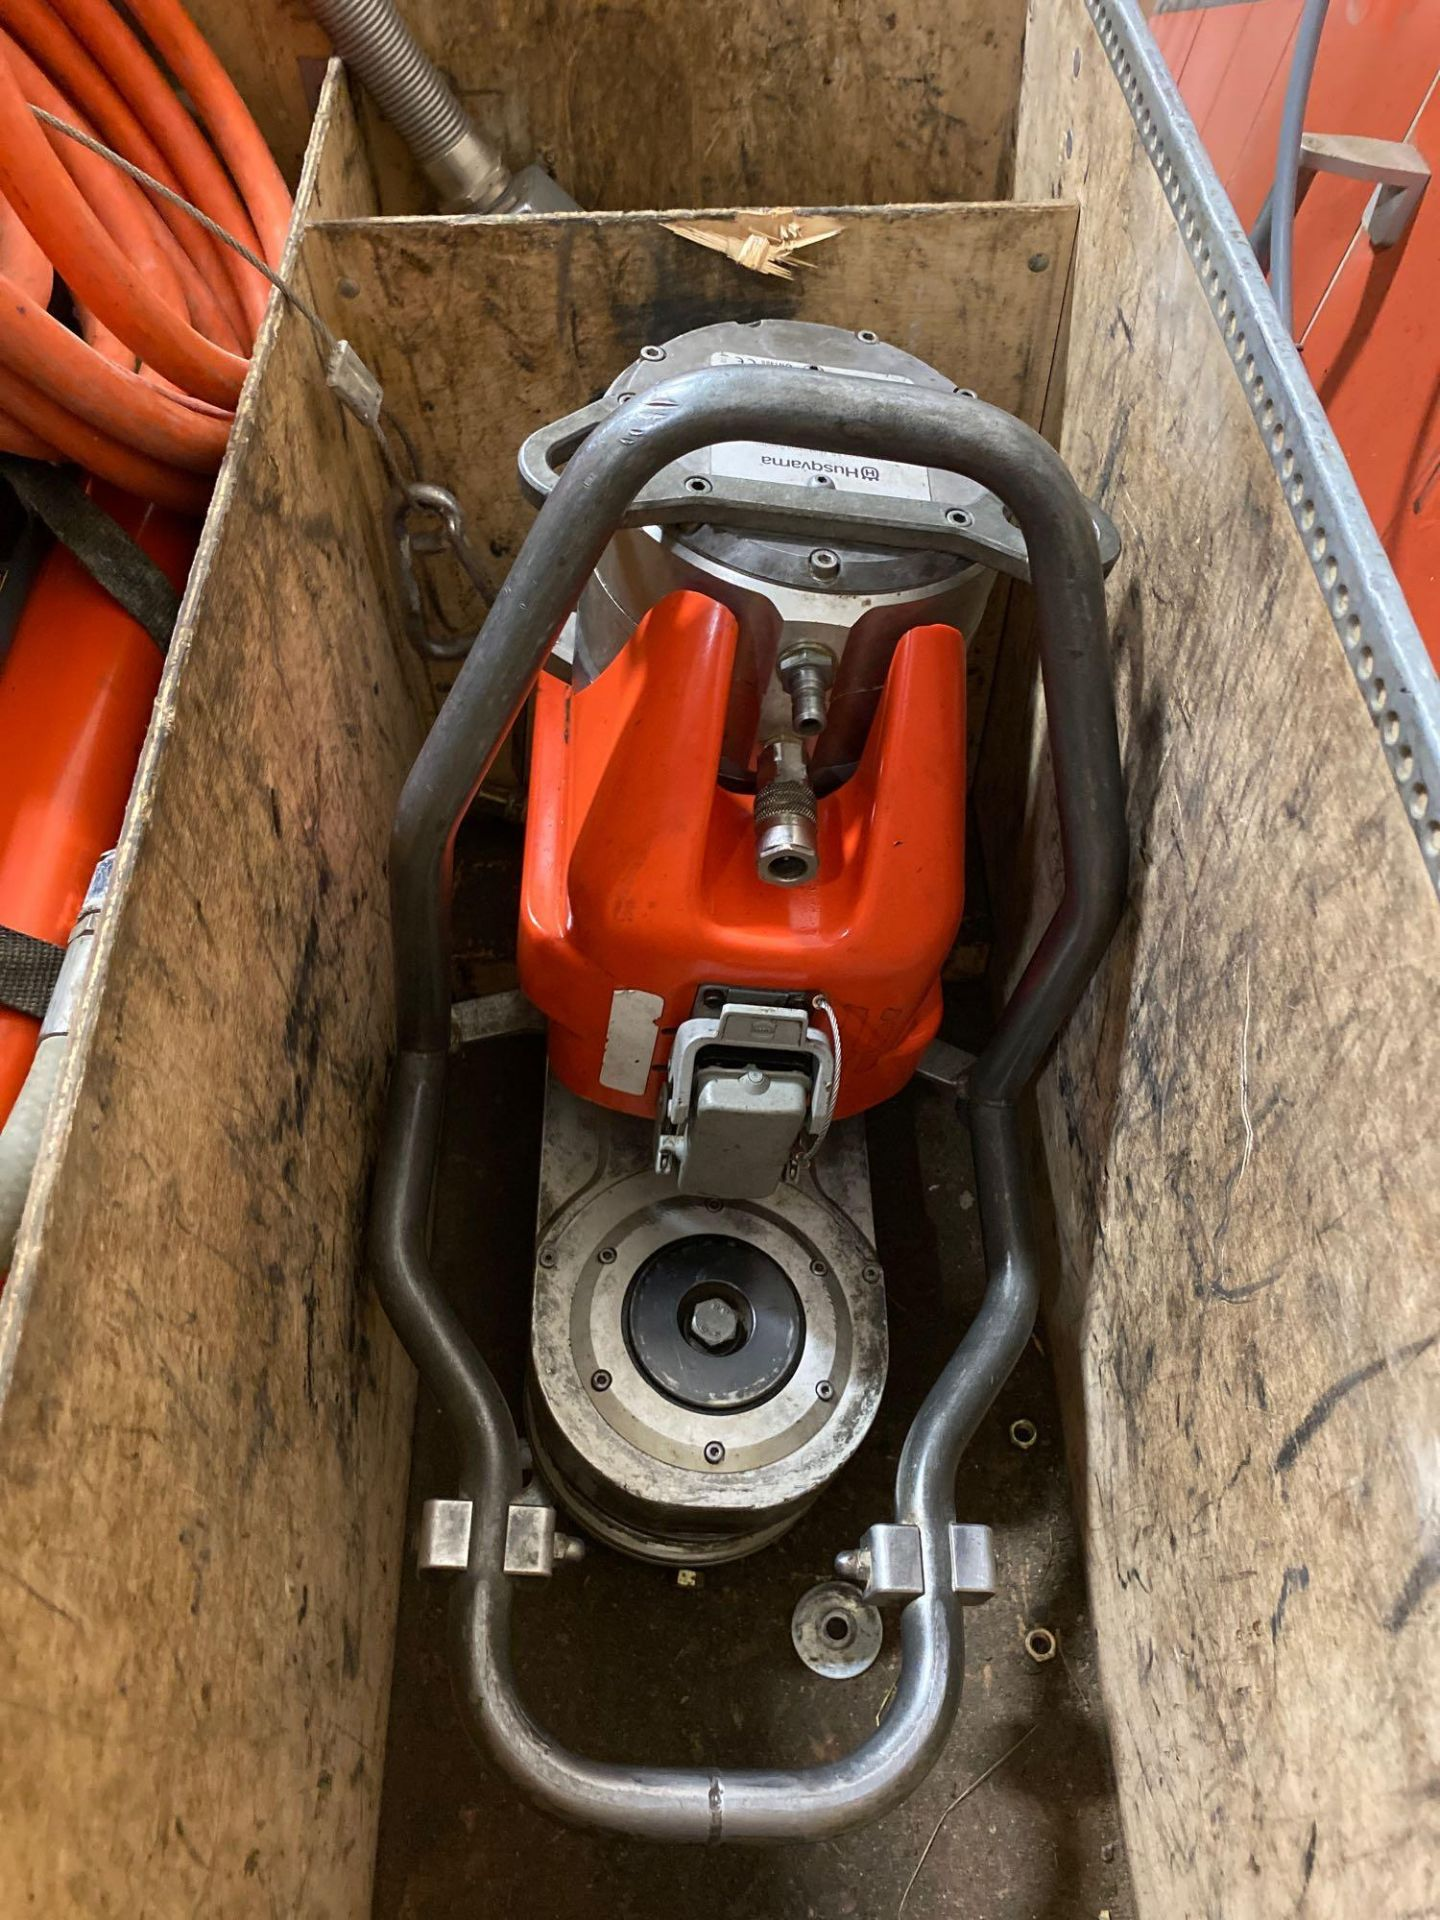 Husqvarna WS 440 HF Electric Wall Saw, Husqvarna PP 440 HF Power Pack, Track System, Blade Guards, e - Image 12 of 17